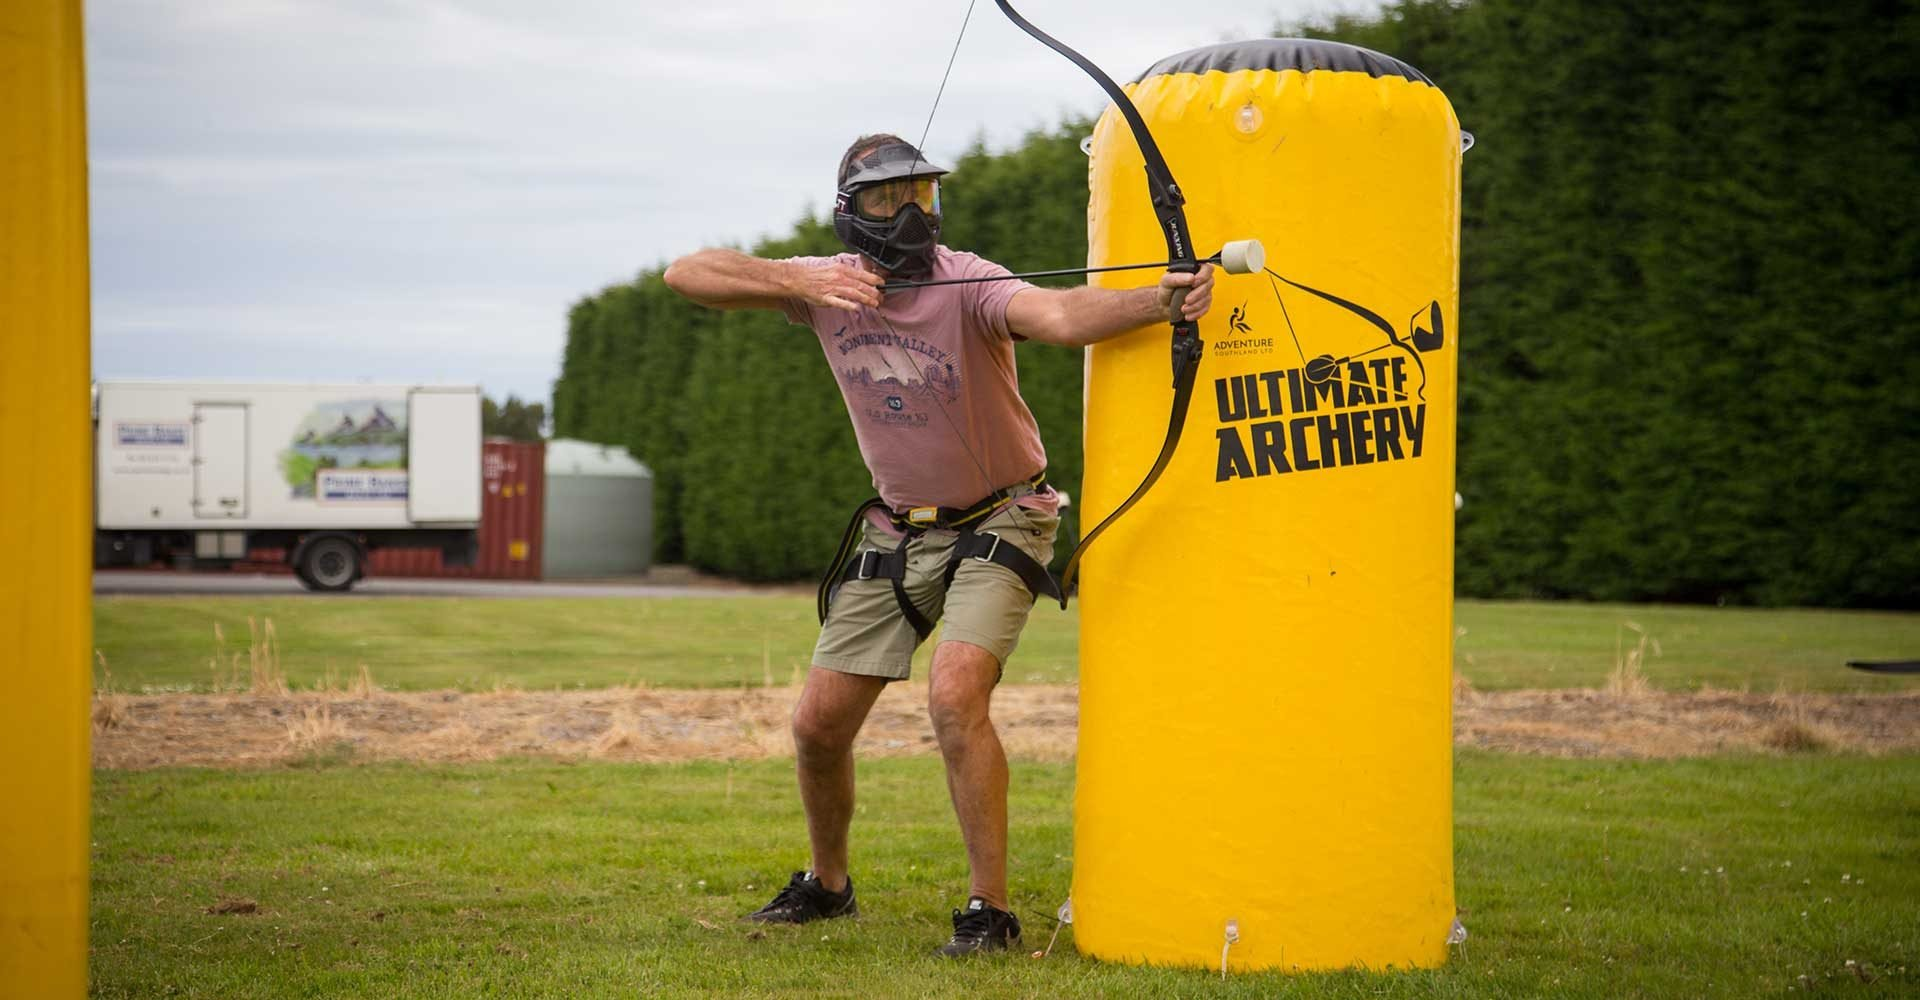 ultimate archery, archery tag, stag do, fun, things to do in southland, things to do in invercargill, adventure activities, archery, adventure southland, hens party, cool things to do